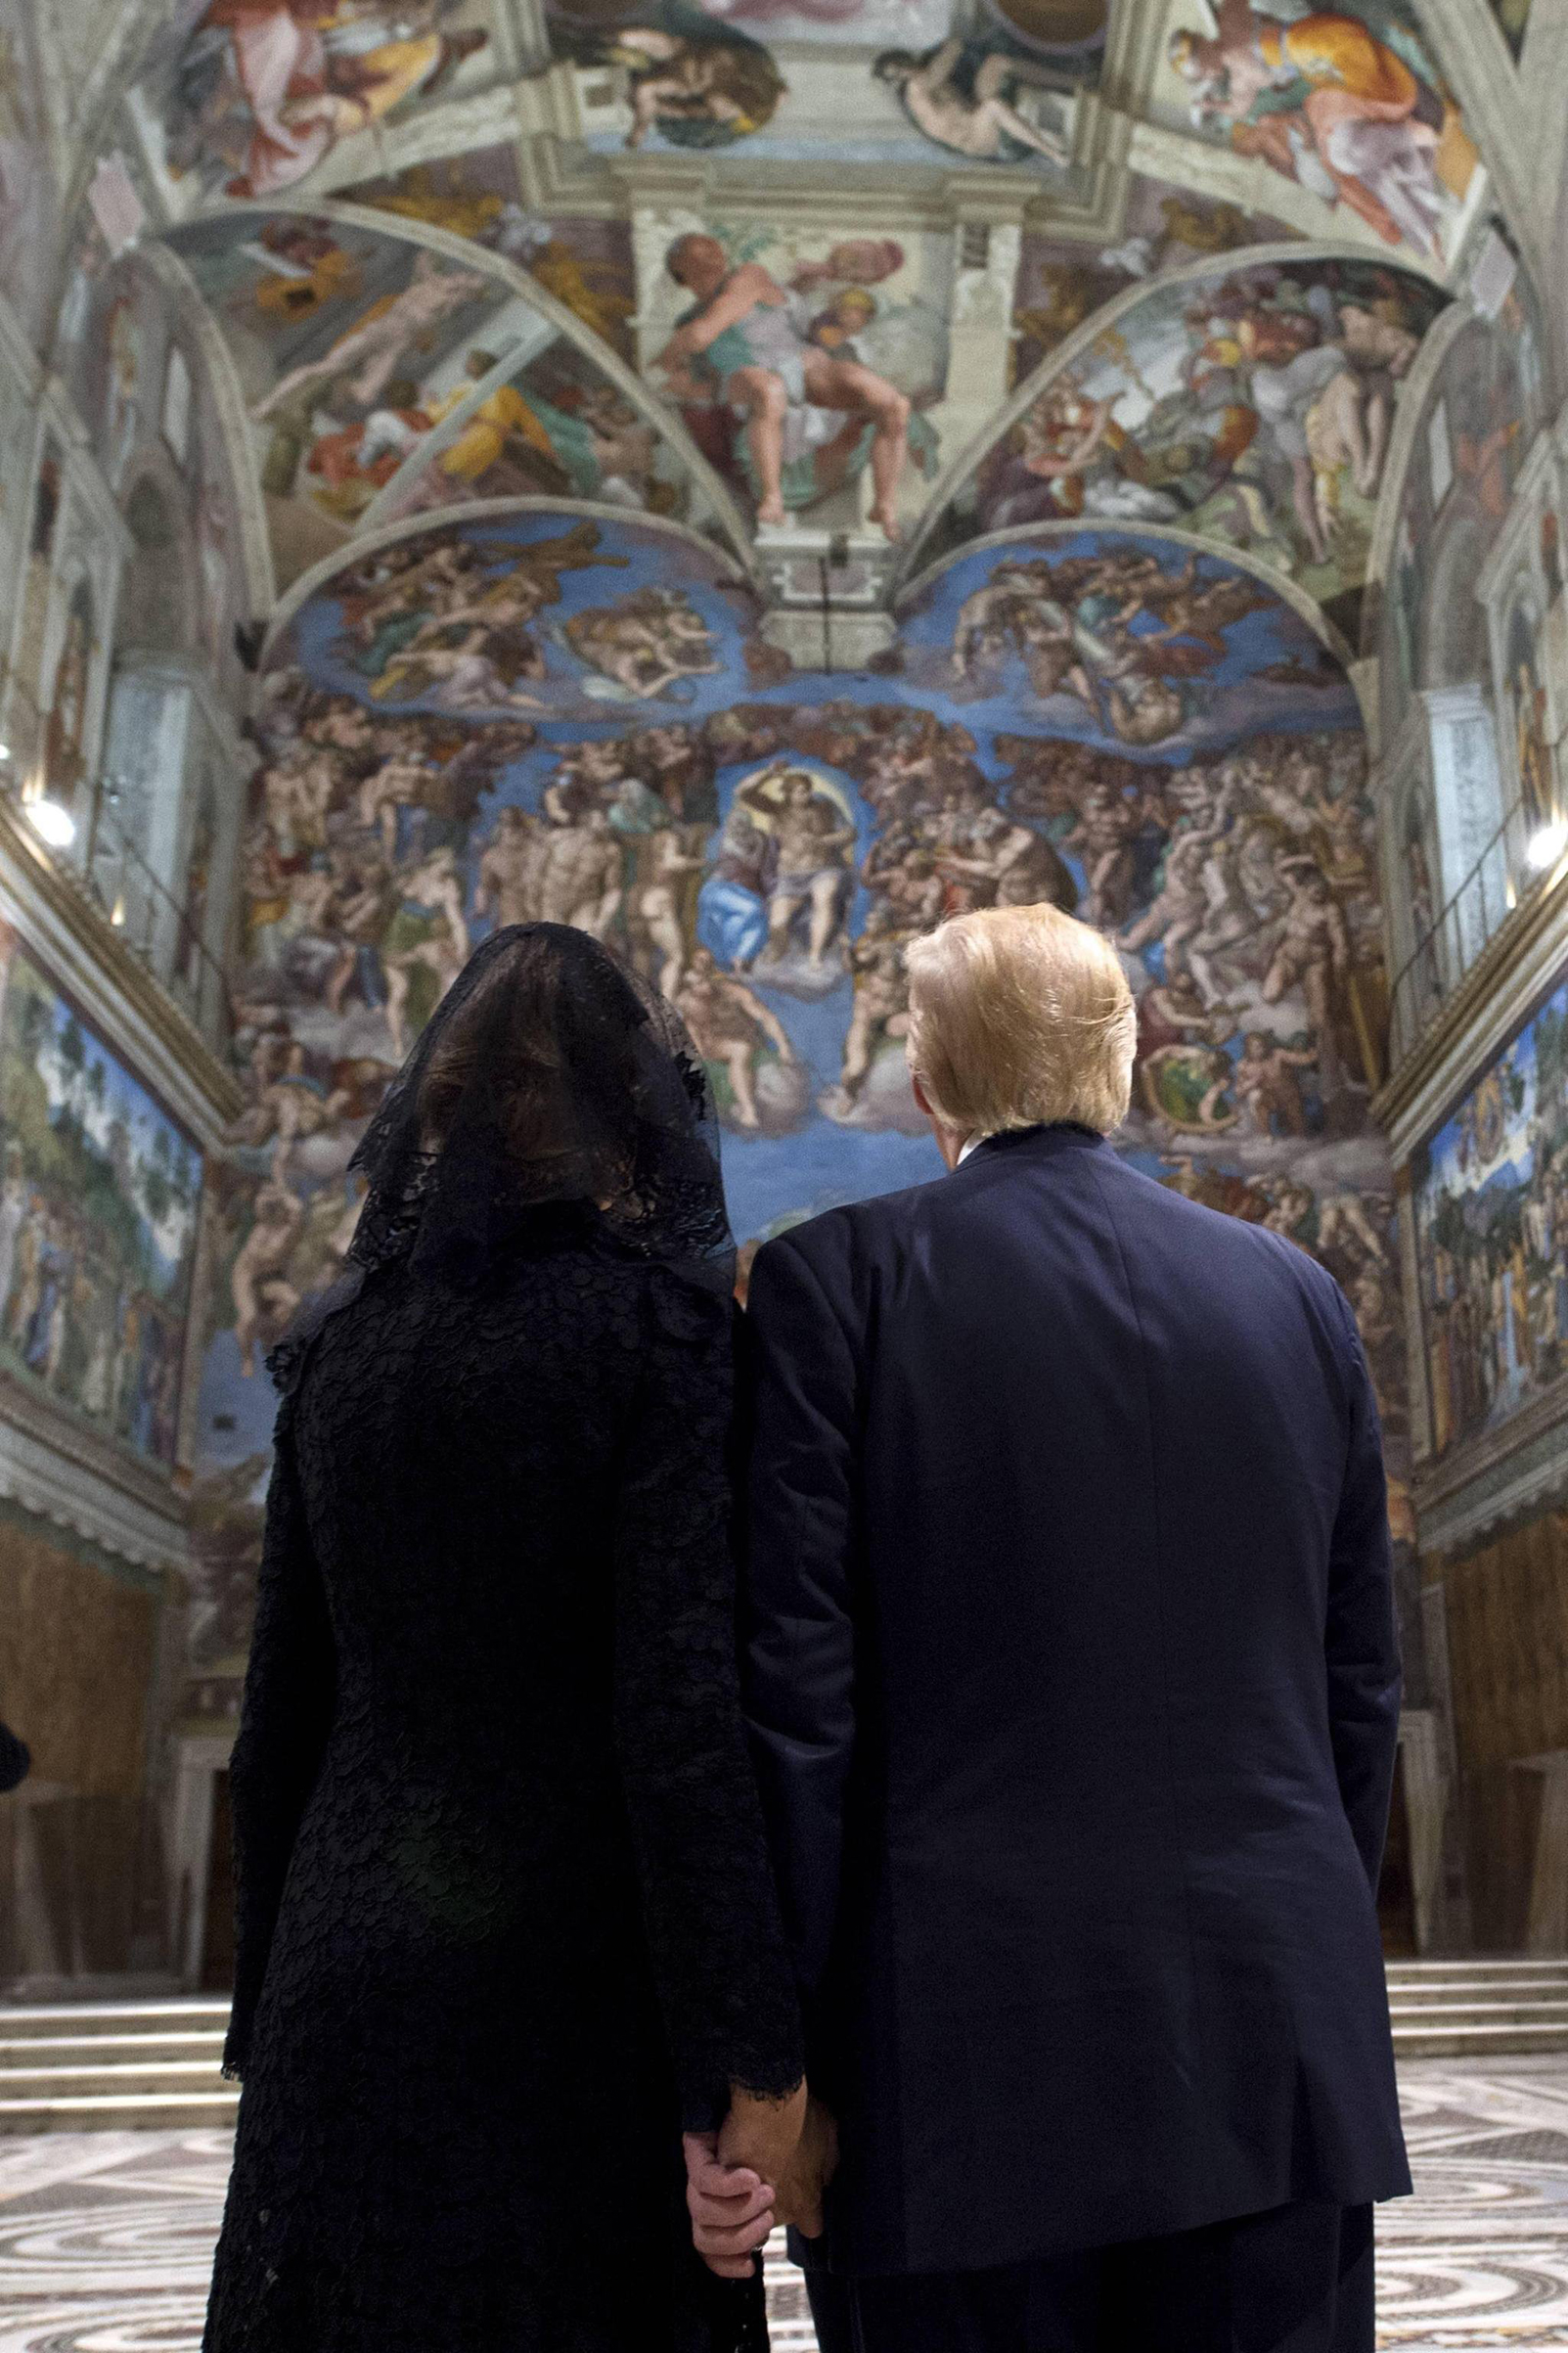 President Trump and First Lady Melania Trump admire the frescoed ceilings during their visit to the Sistine Chapel at the Vatican on May 24, 2017.